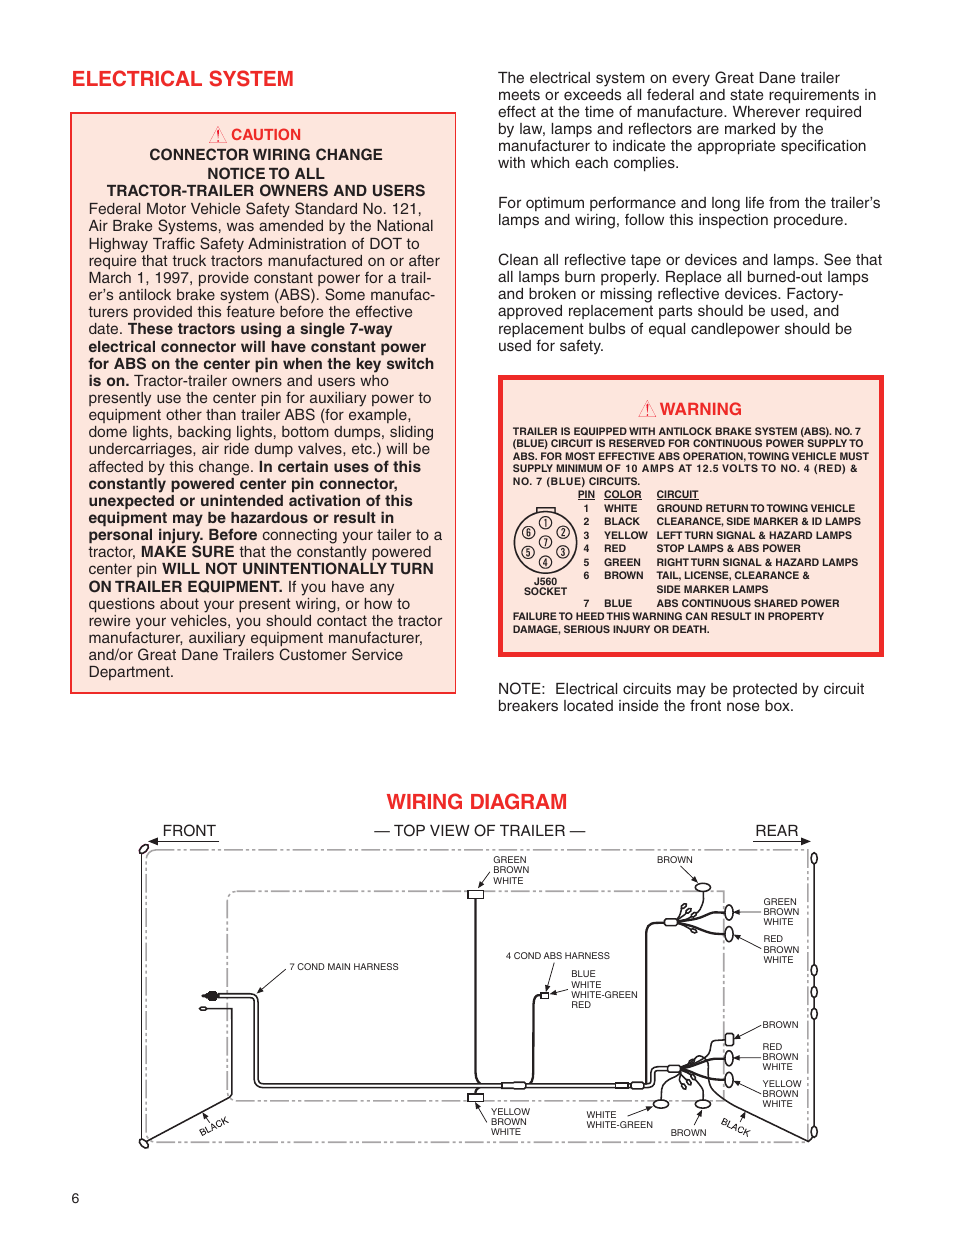 Electrical system, Wiring diagram, Warning | Great Dane 42101401 User Manual  | Page 8 / 32